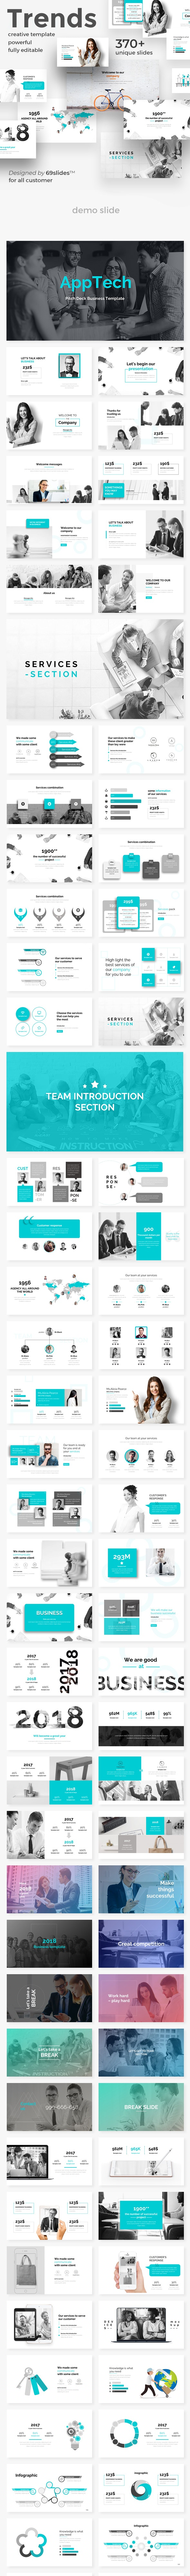 Business Trends Bundle 3 in 1 Powerpoint Template - Creative PowerPoint Templates